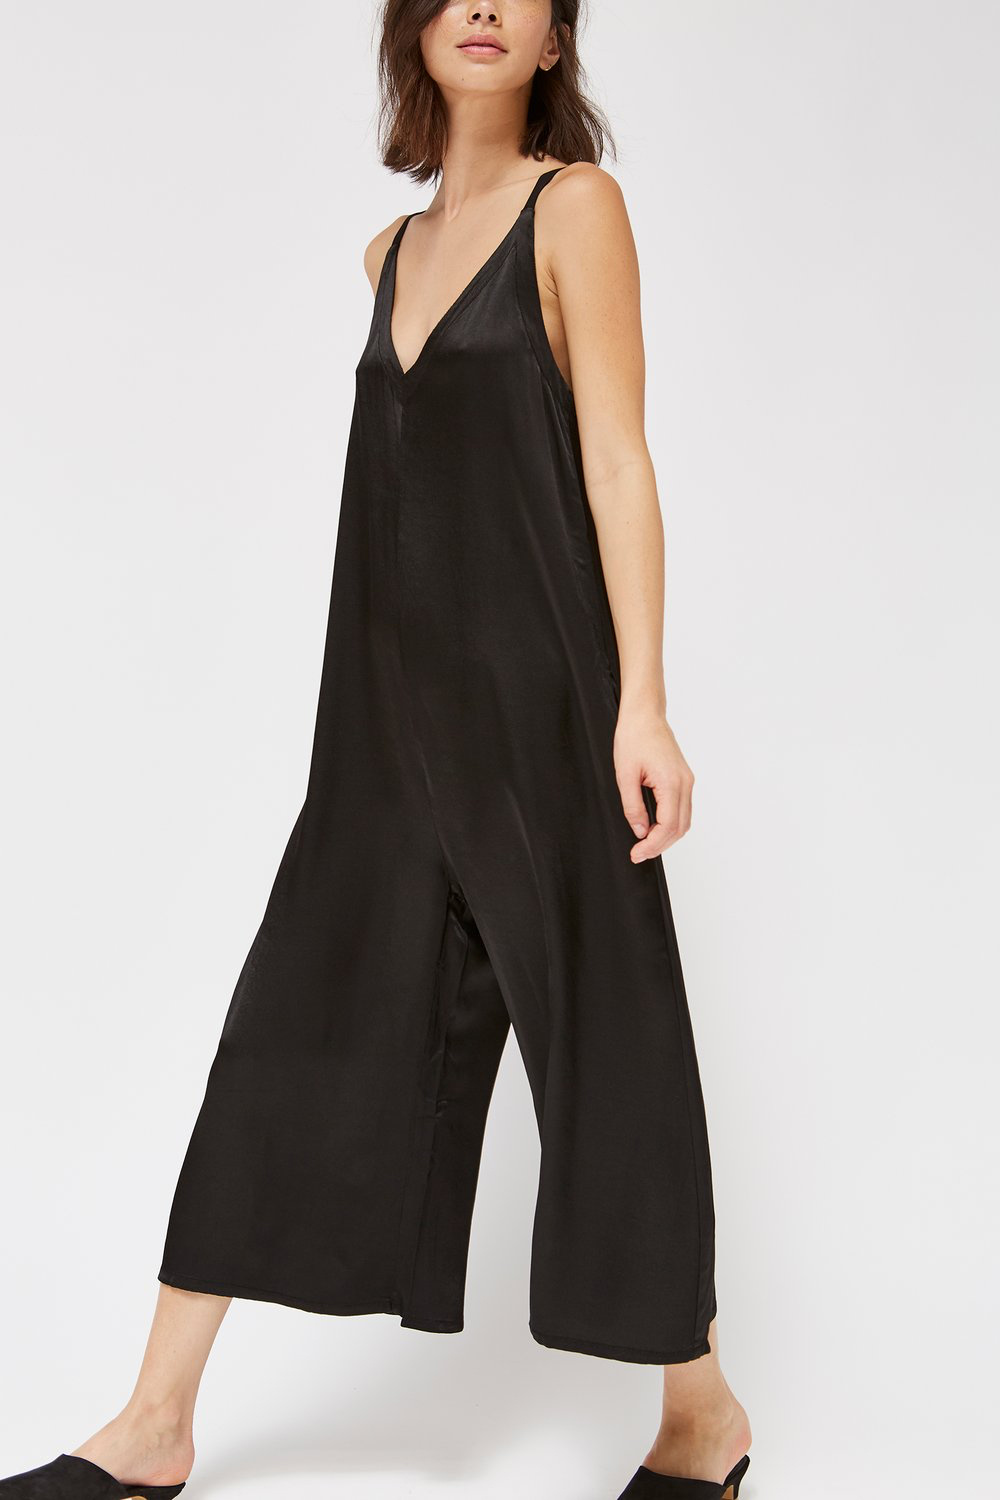 Lacausa Santi Jumpsuit in Tar